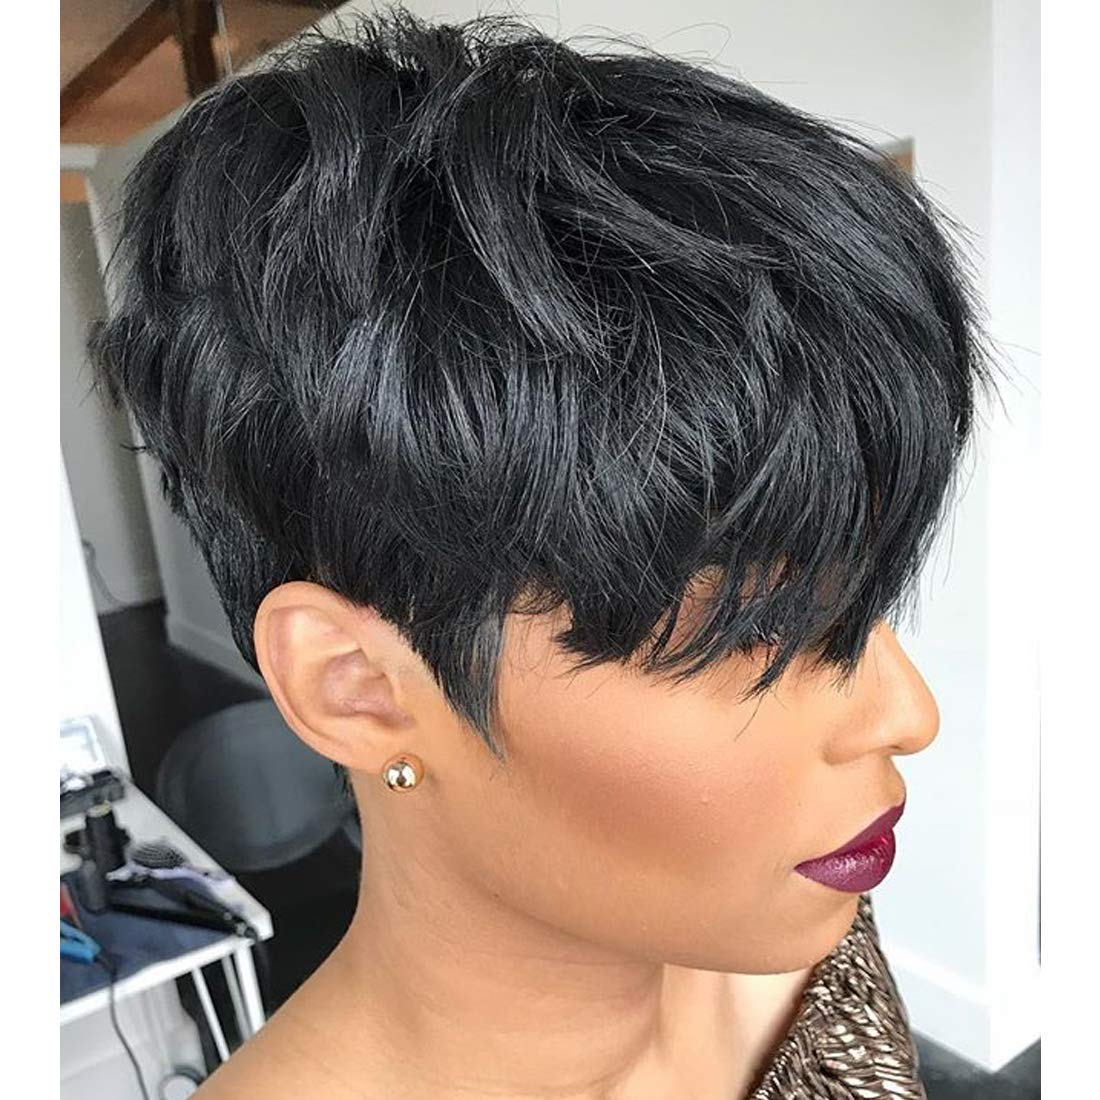 VRZ Short Straight Human Hair Wigs with Bangs Pixie Cut Wigs for Women 12%  Remy Brazilian Hair Natural Black